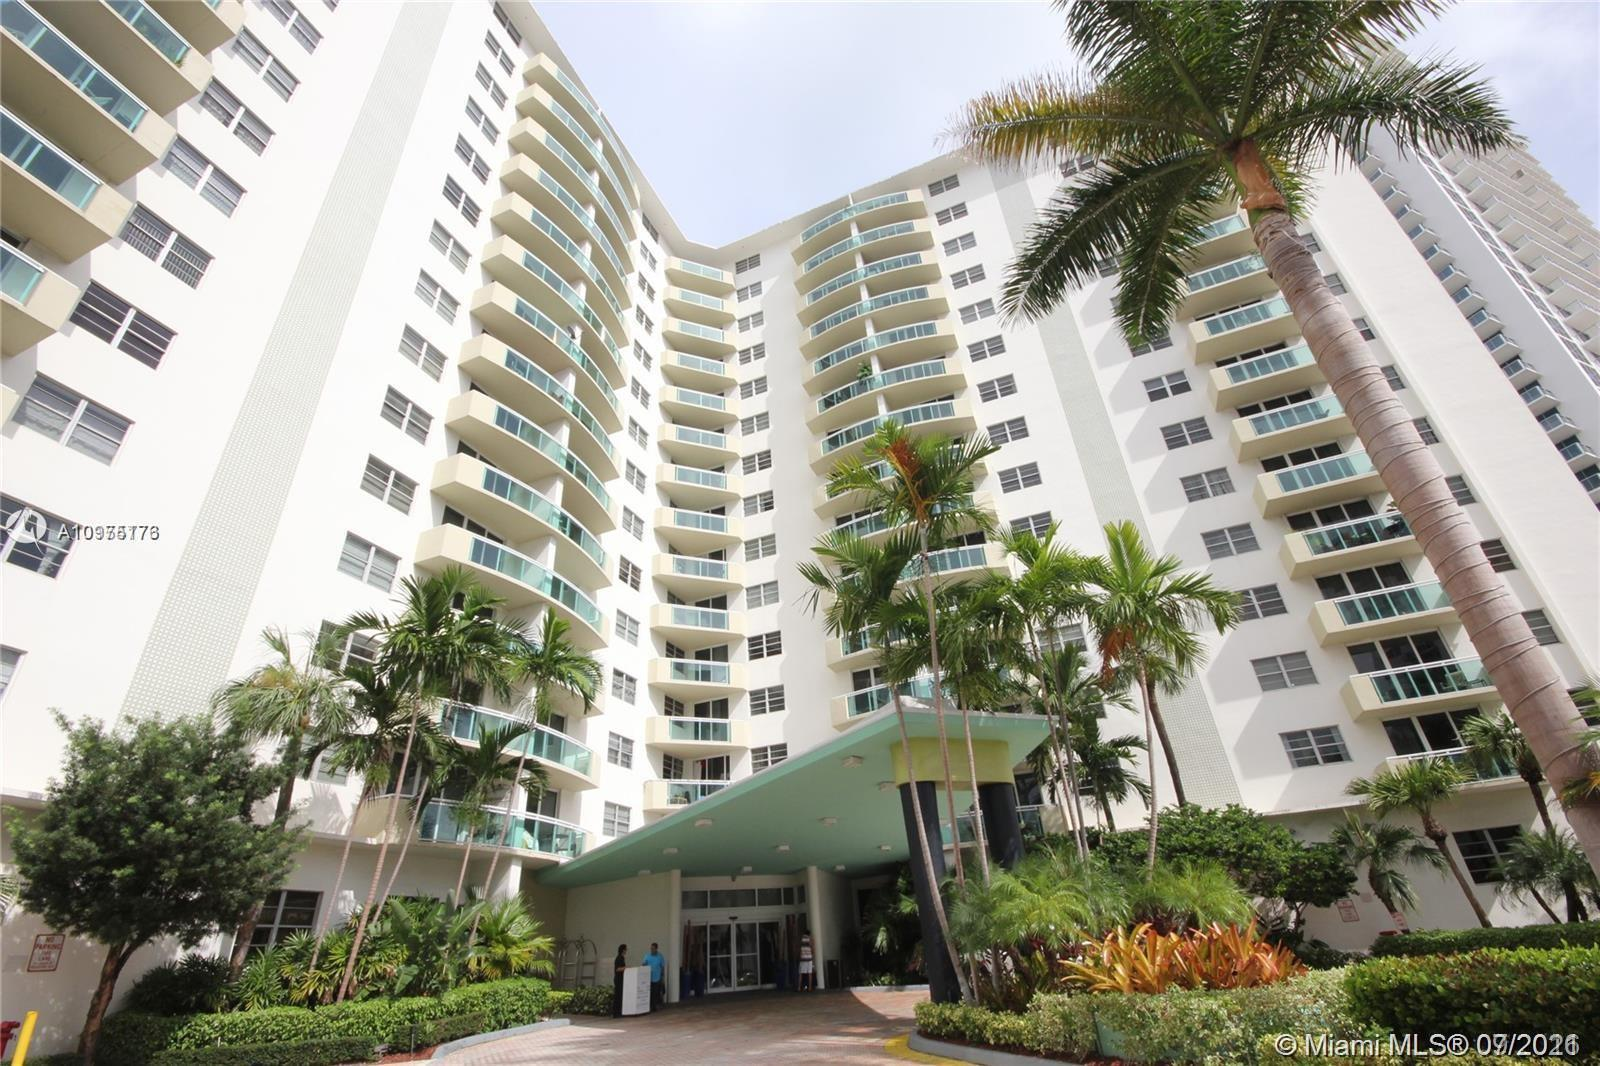 Best Deal in the bldg! Immaculate, like Modern Kitchen, Bright Spacious Living Area, Glass Balcony,